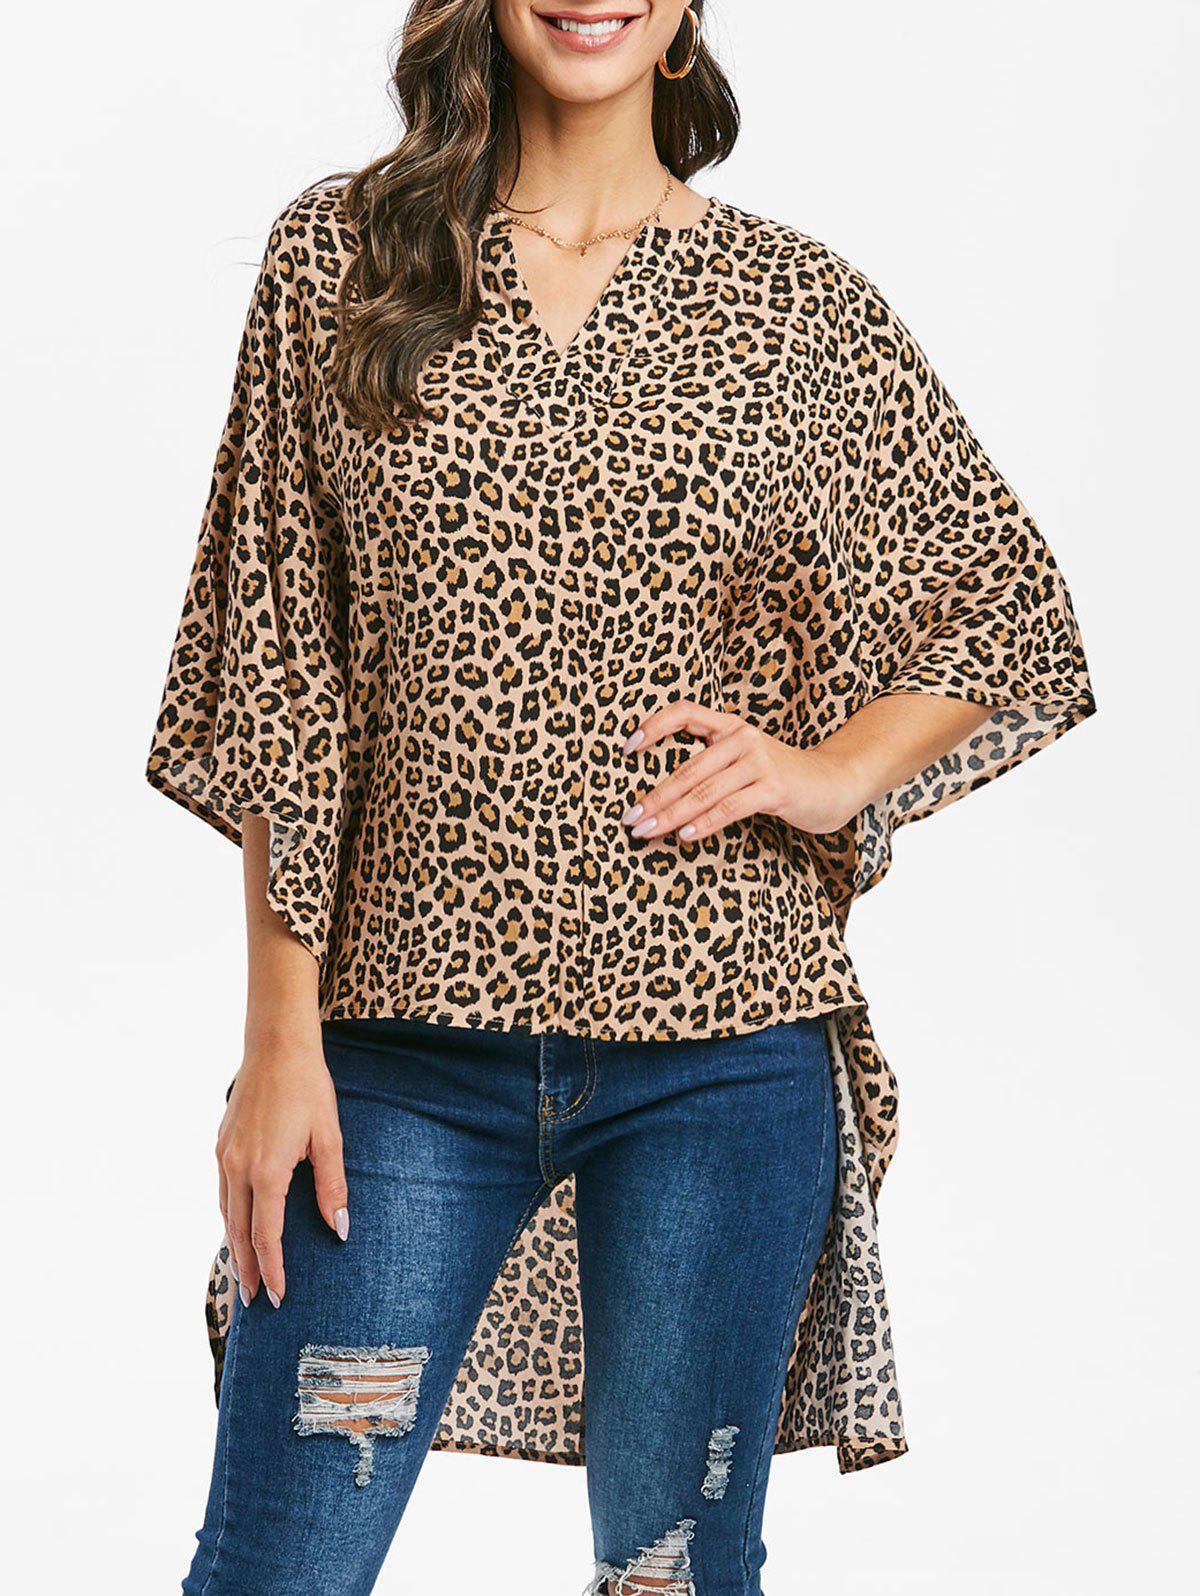 Leopard V Notched Batwing Sleeve High Low Blouse - LEOPARD S